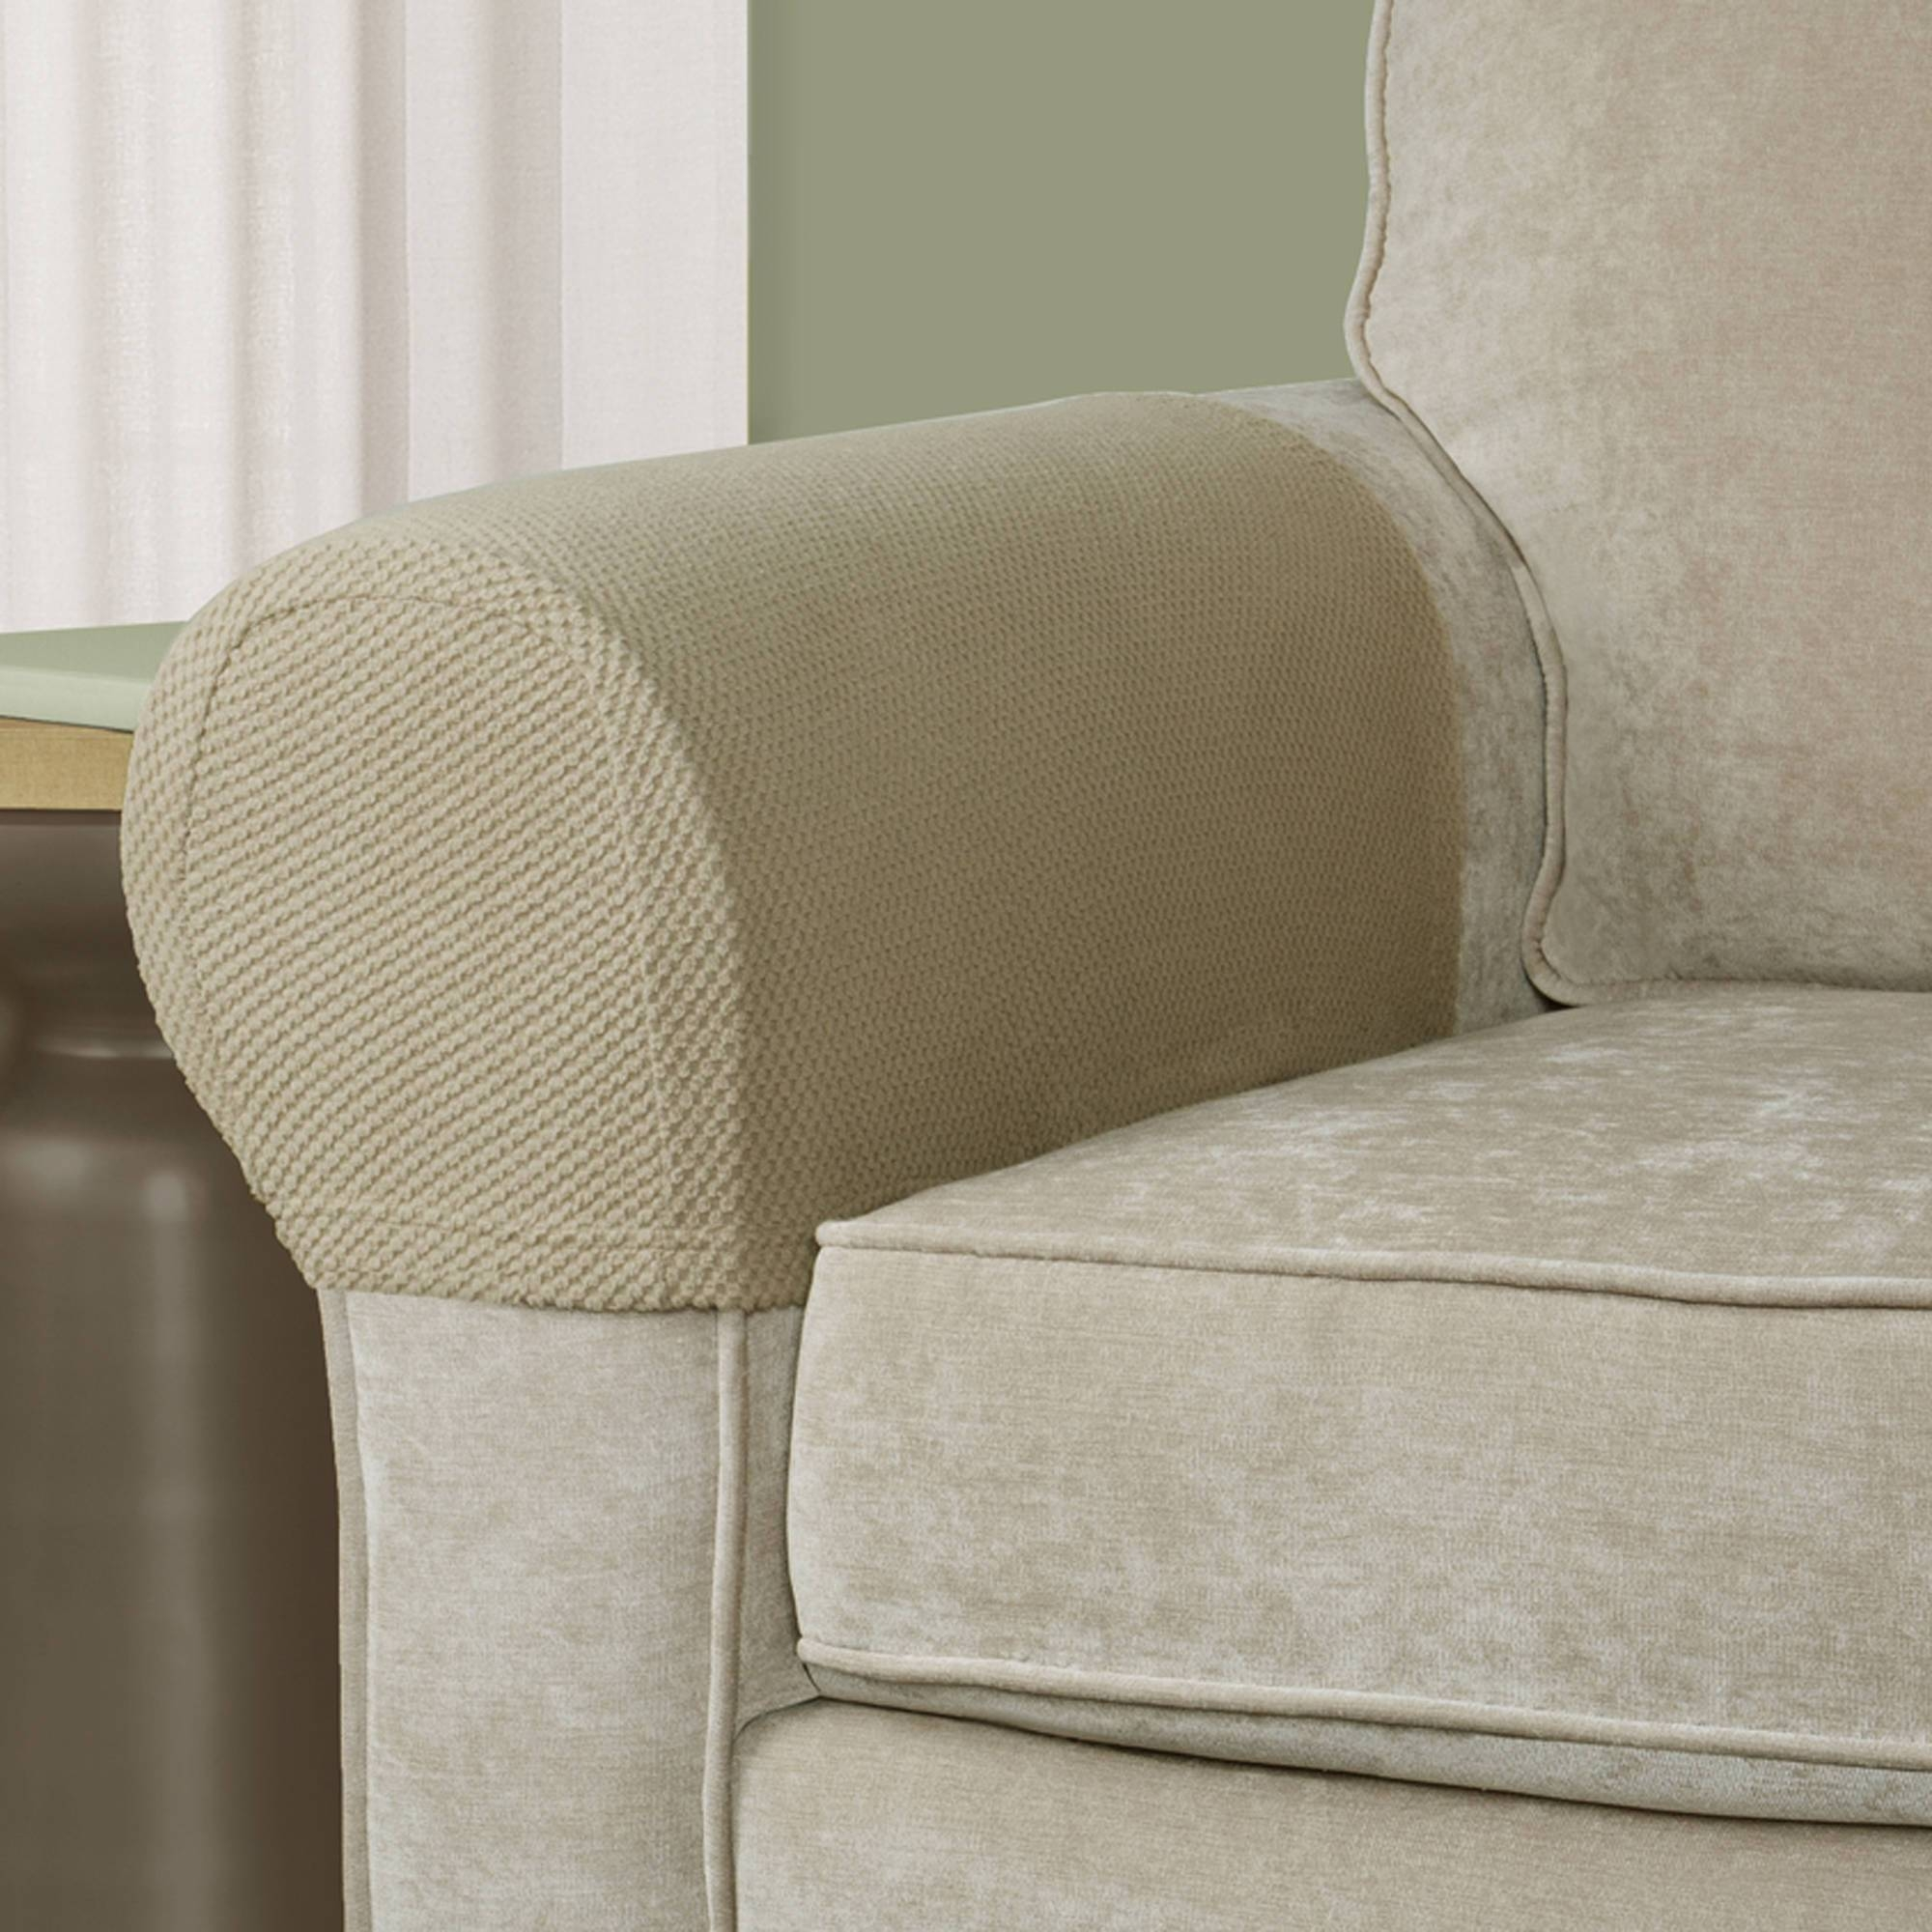 Mainstays Pixel Stretch Fabric Furniture Armrest Covers - Walmart throughout Sofa and Chair Slipcovers (Image 12 of 15)